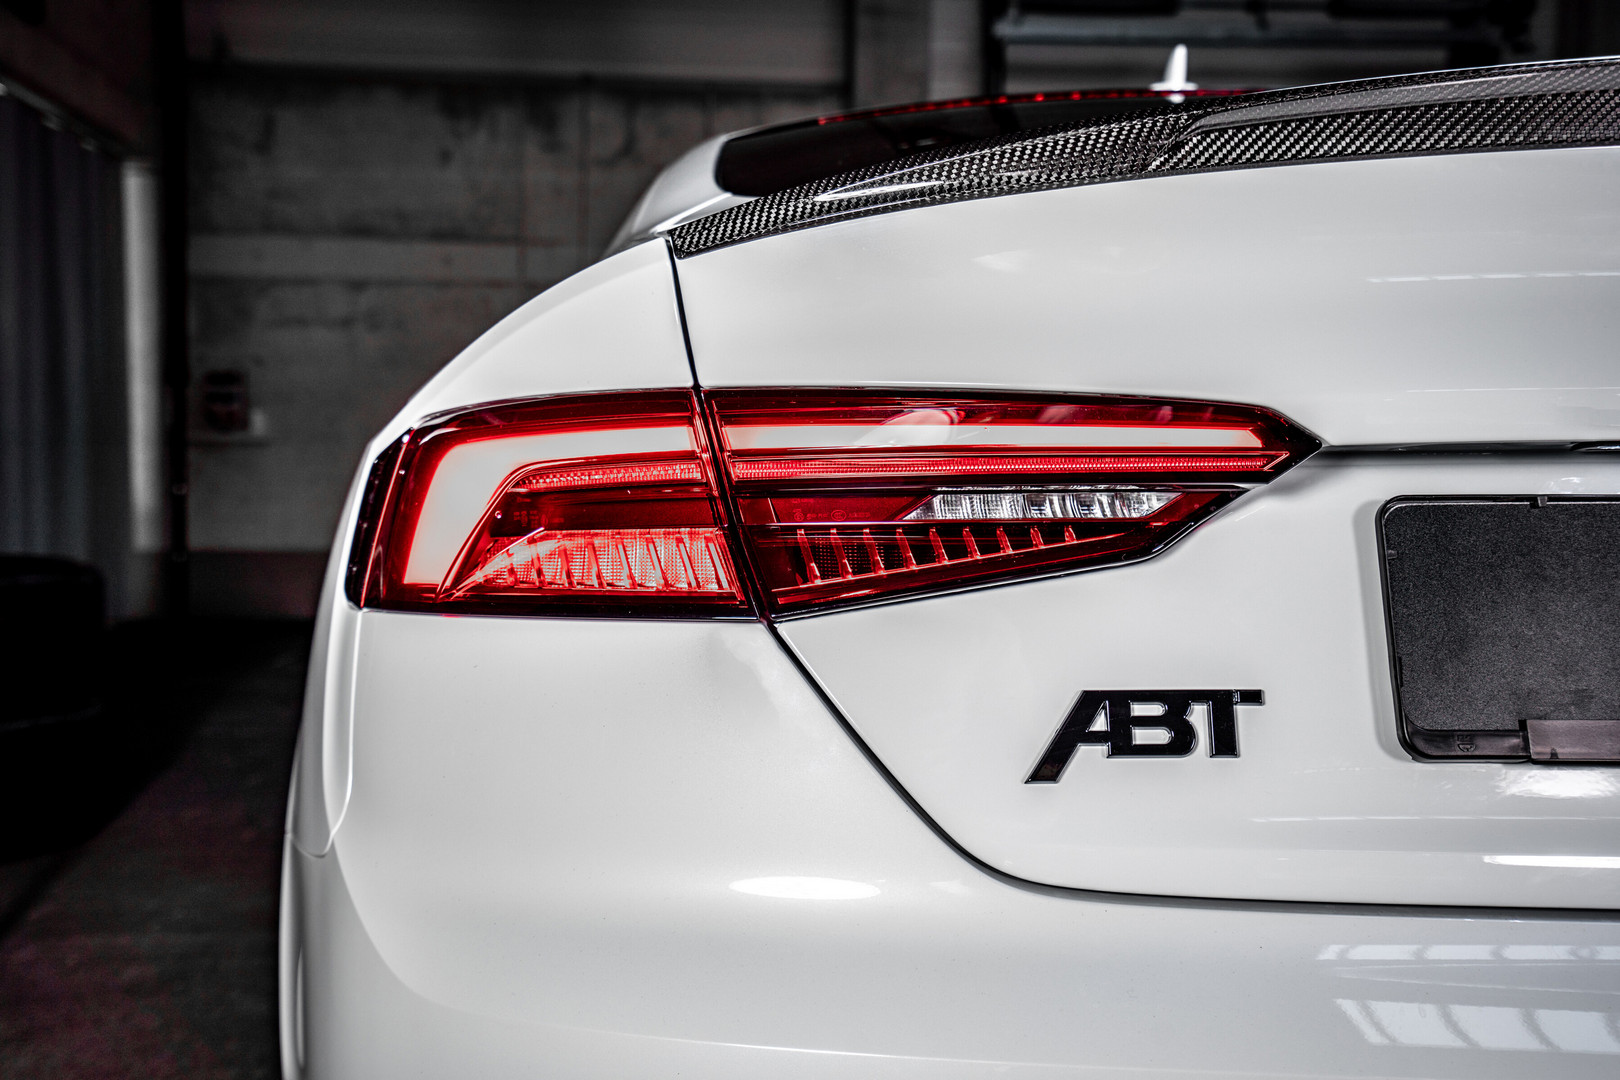 ABT Audi RS5-R Rear Light